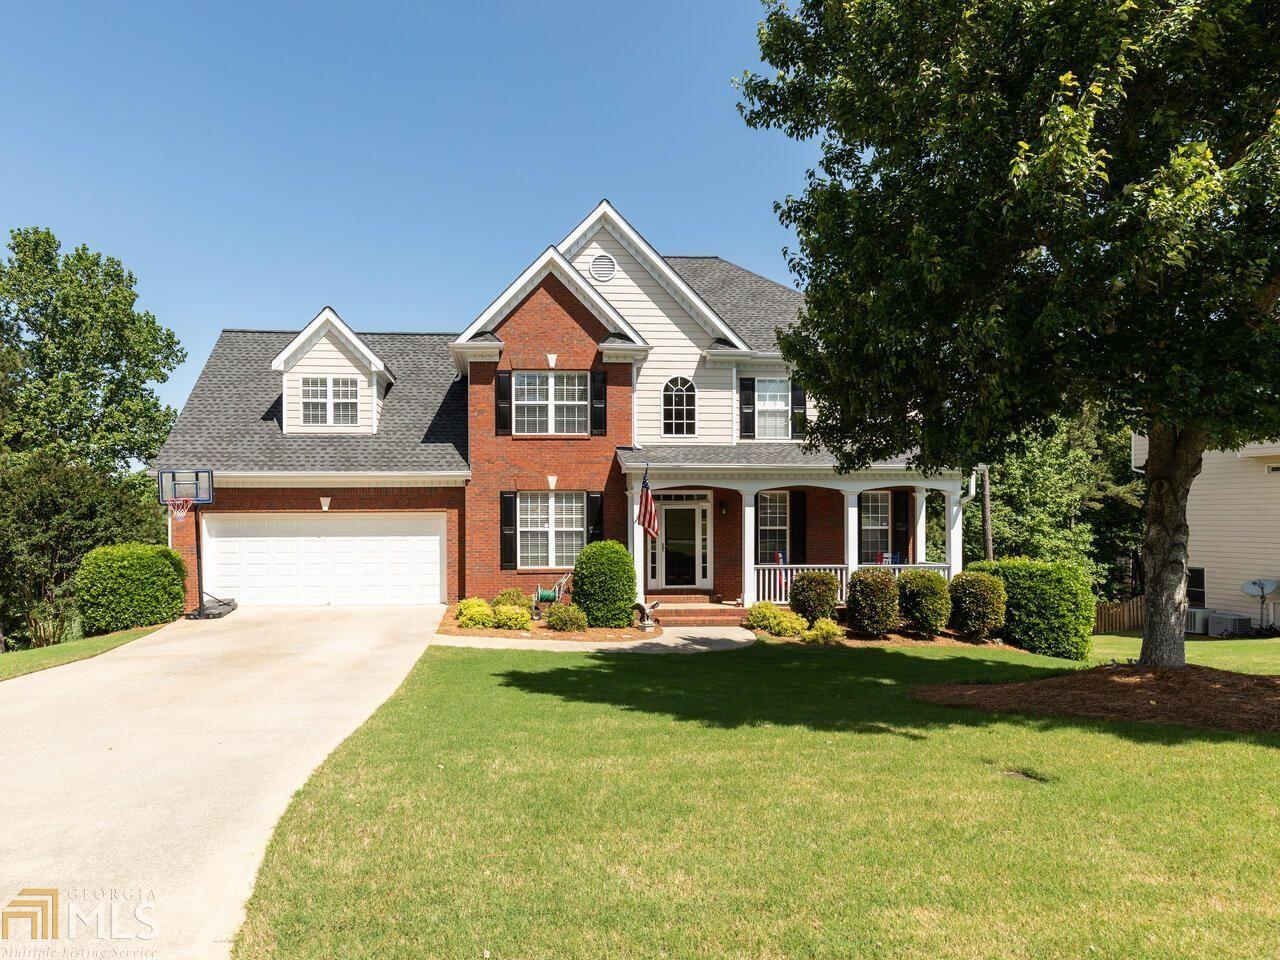 Image for property 2262 SAINT KENNEDY LANE, BUFORD, GA 30518